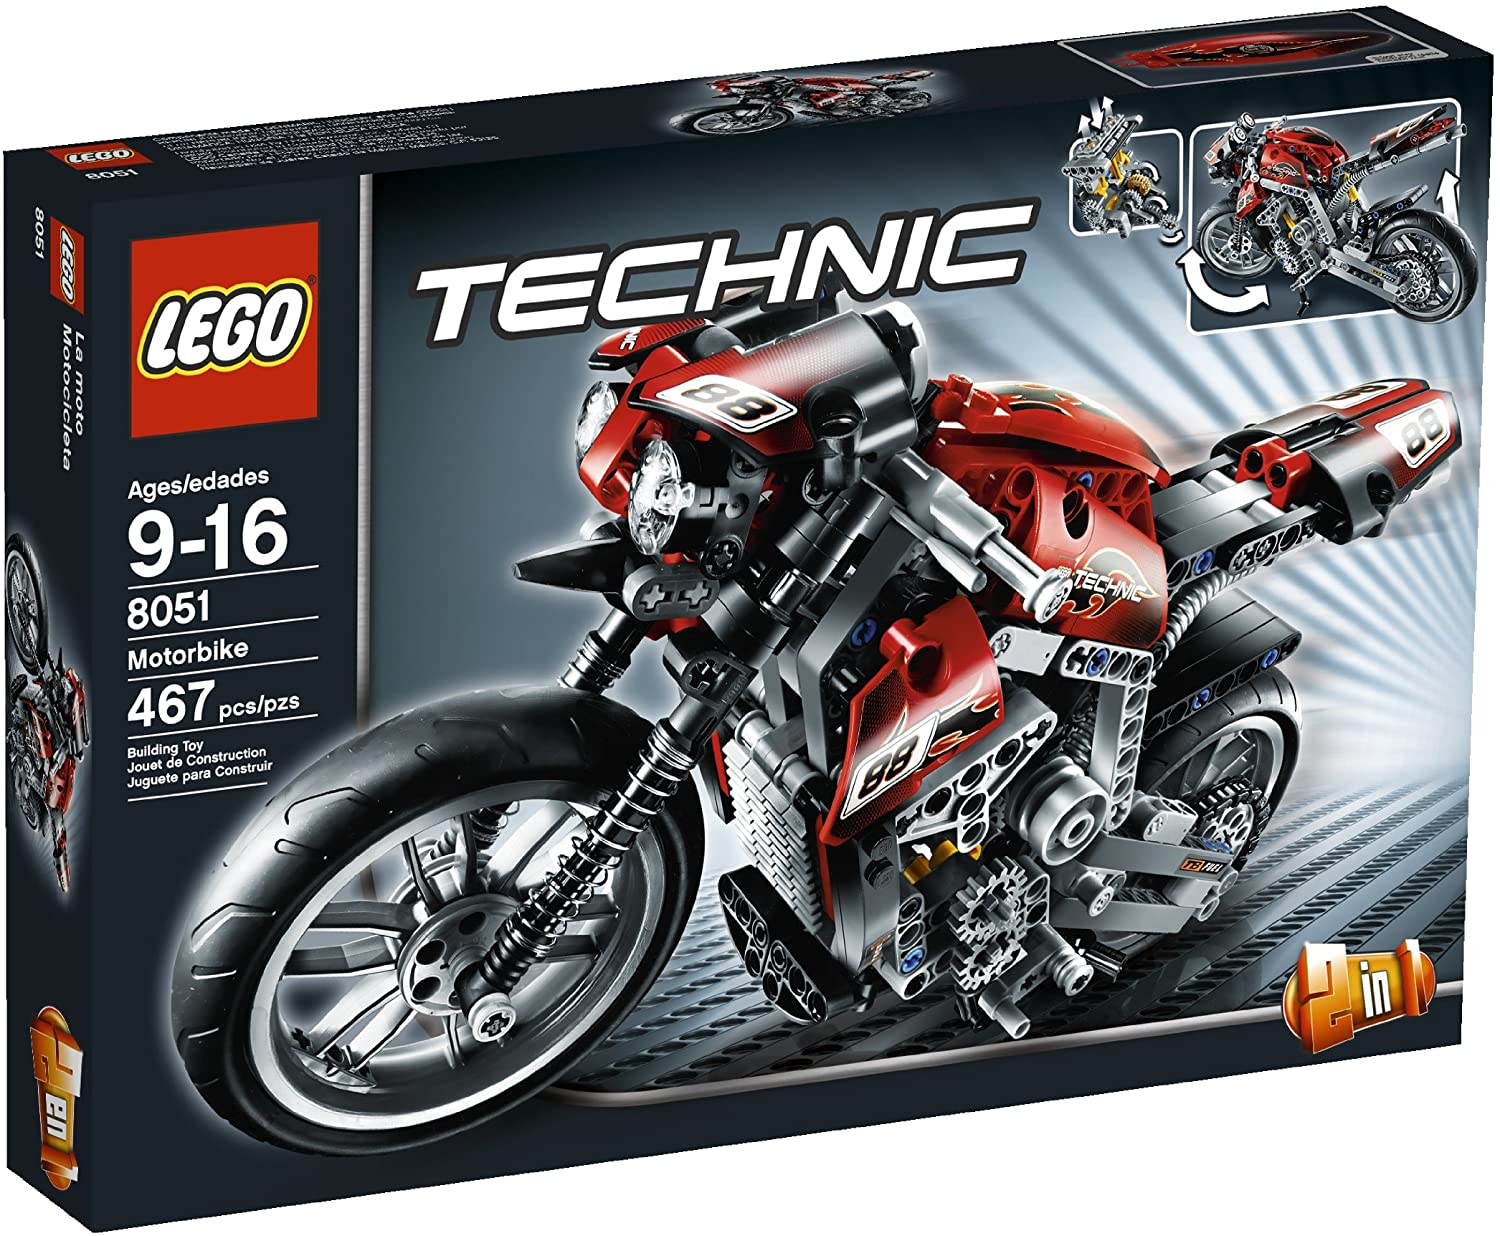 7 Best LEGO Motorcycle Sets Reviews of 2021 9